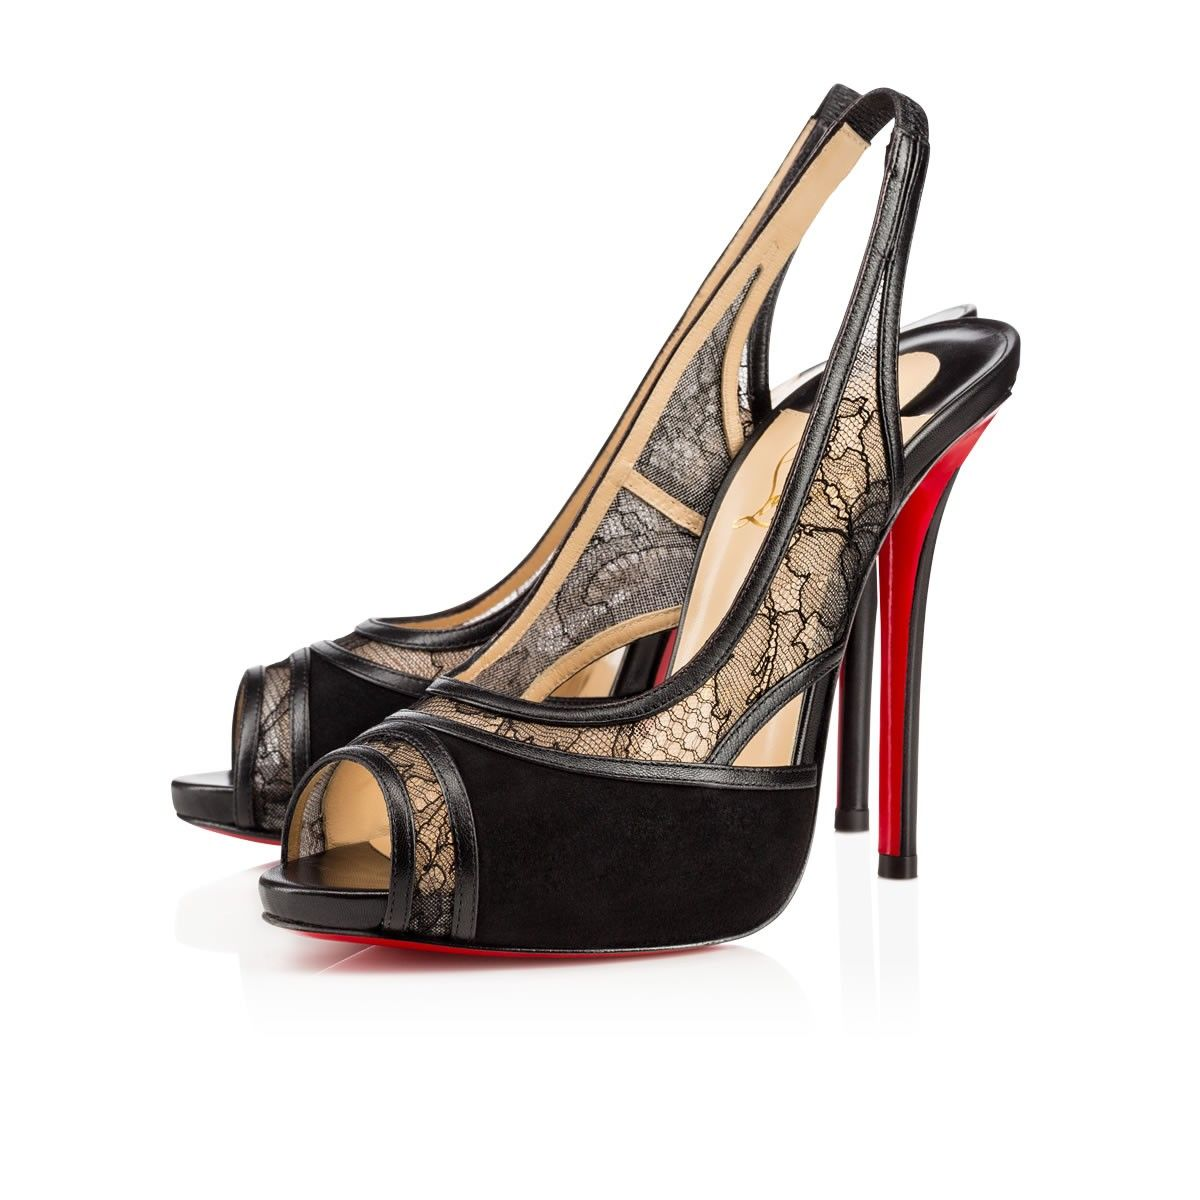 """Pairing leather and lace, """"Znouba"""" is a seductive new sling back this season. Featuring an open toe and 120mm apostrophe heel, this black version is a ravishing red sole look for parties and events."""